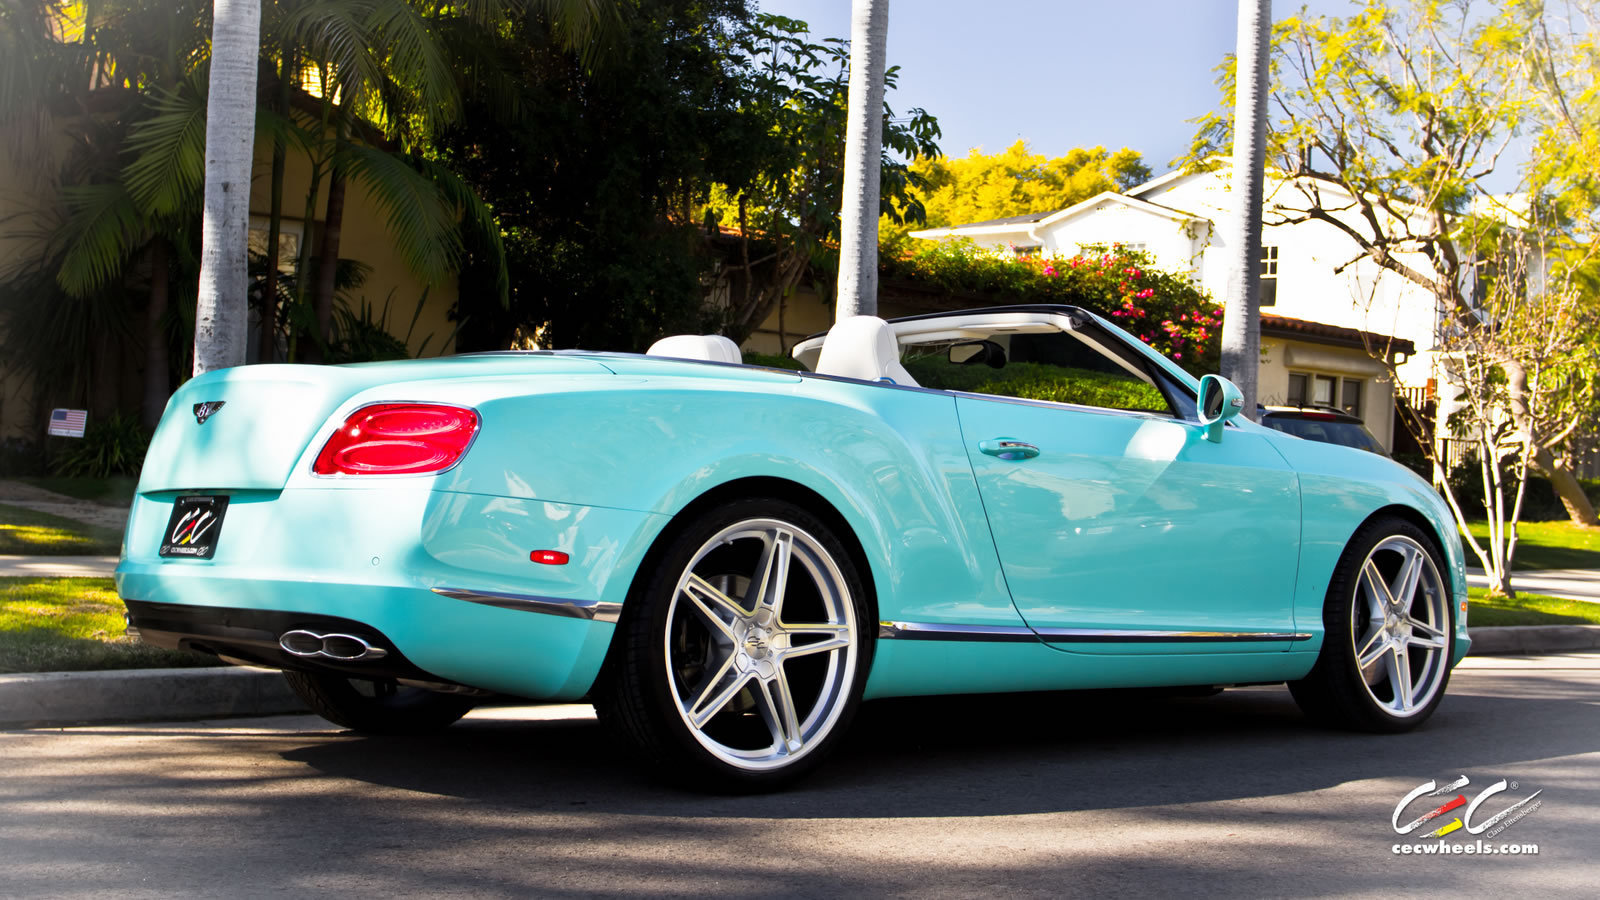 2013 bentley continental gtc limited edition by bentley beverly hills pictu. Cars Review. Best American Auto & Cars Review